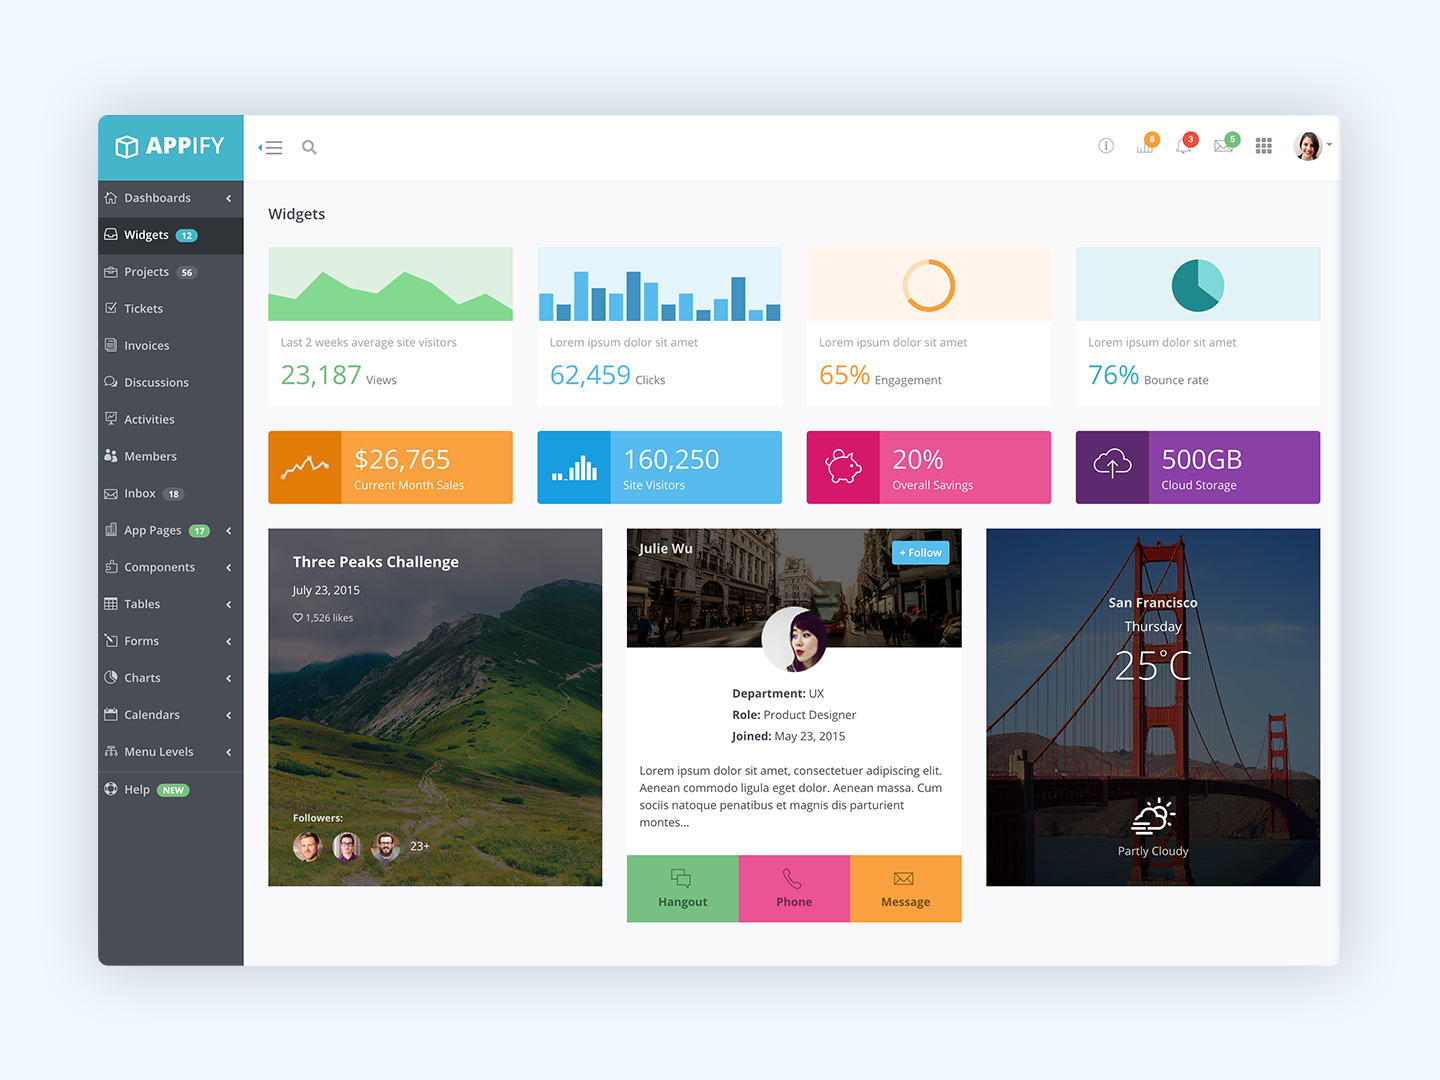 Appify Theme Widgets by Xiaoying Riley on Dribbble